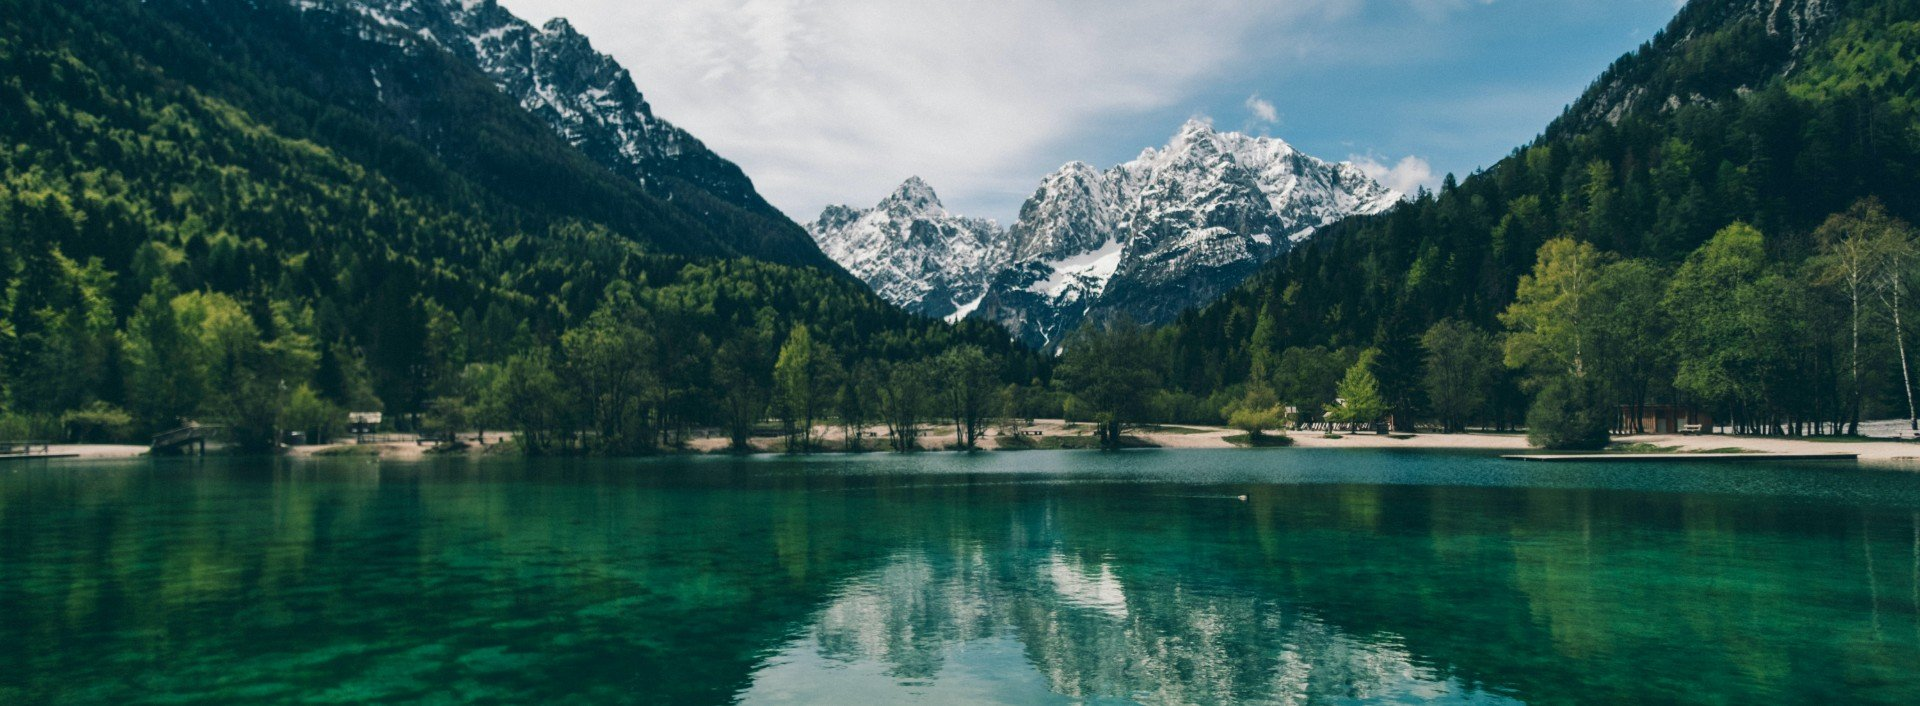 Water Vocabulary in English: A crystal clear lake sits in front of a mountain covered in snow.